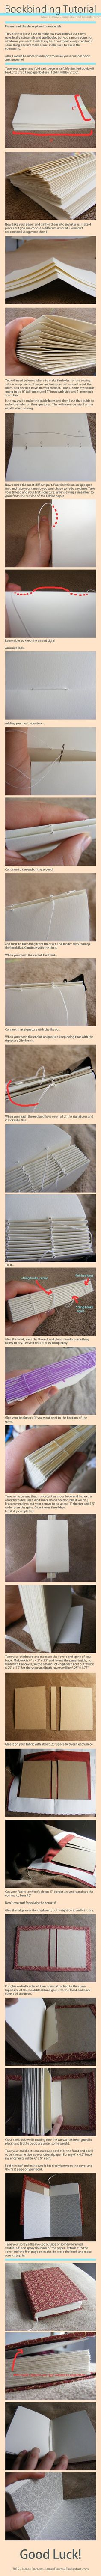 Make your own book!!! So cool!!!!!